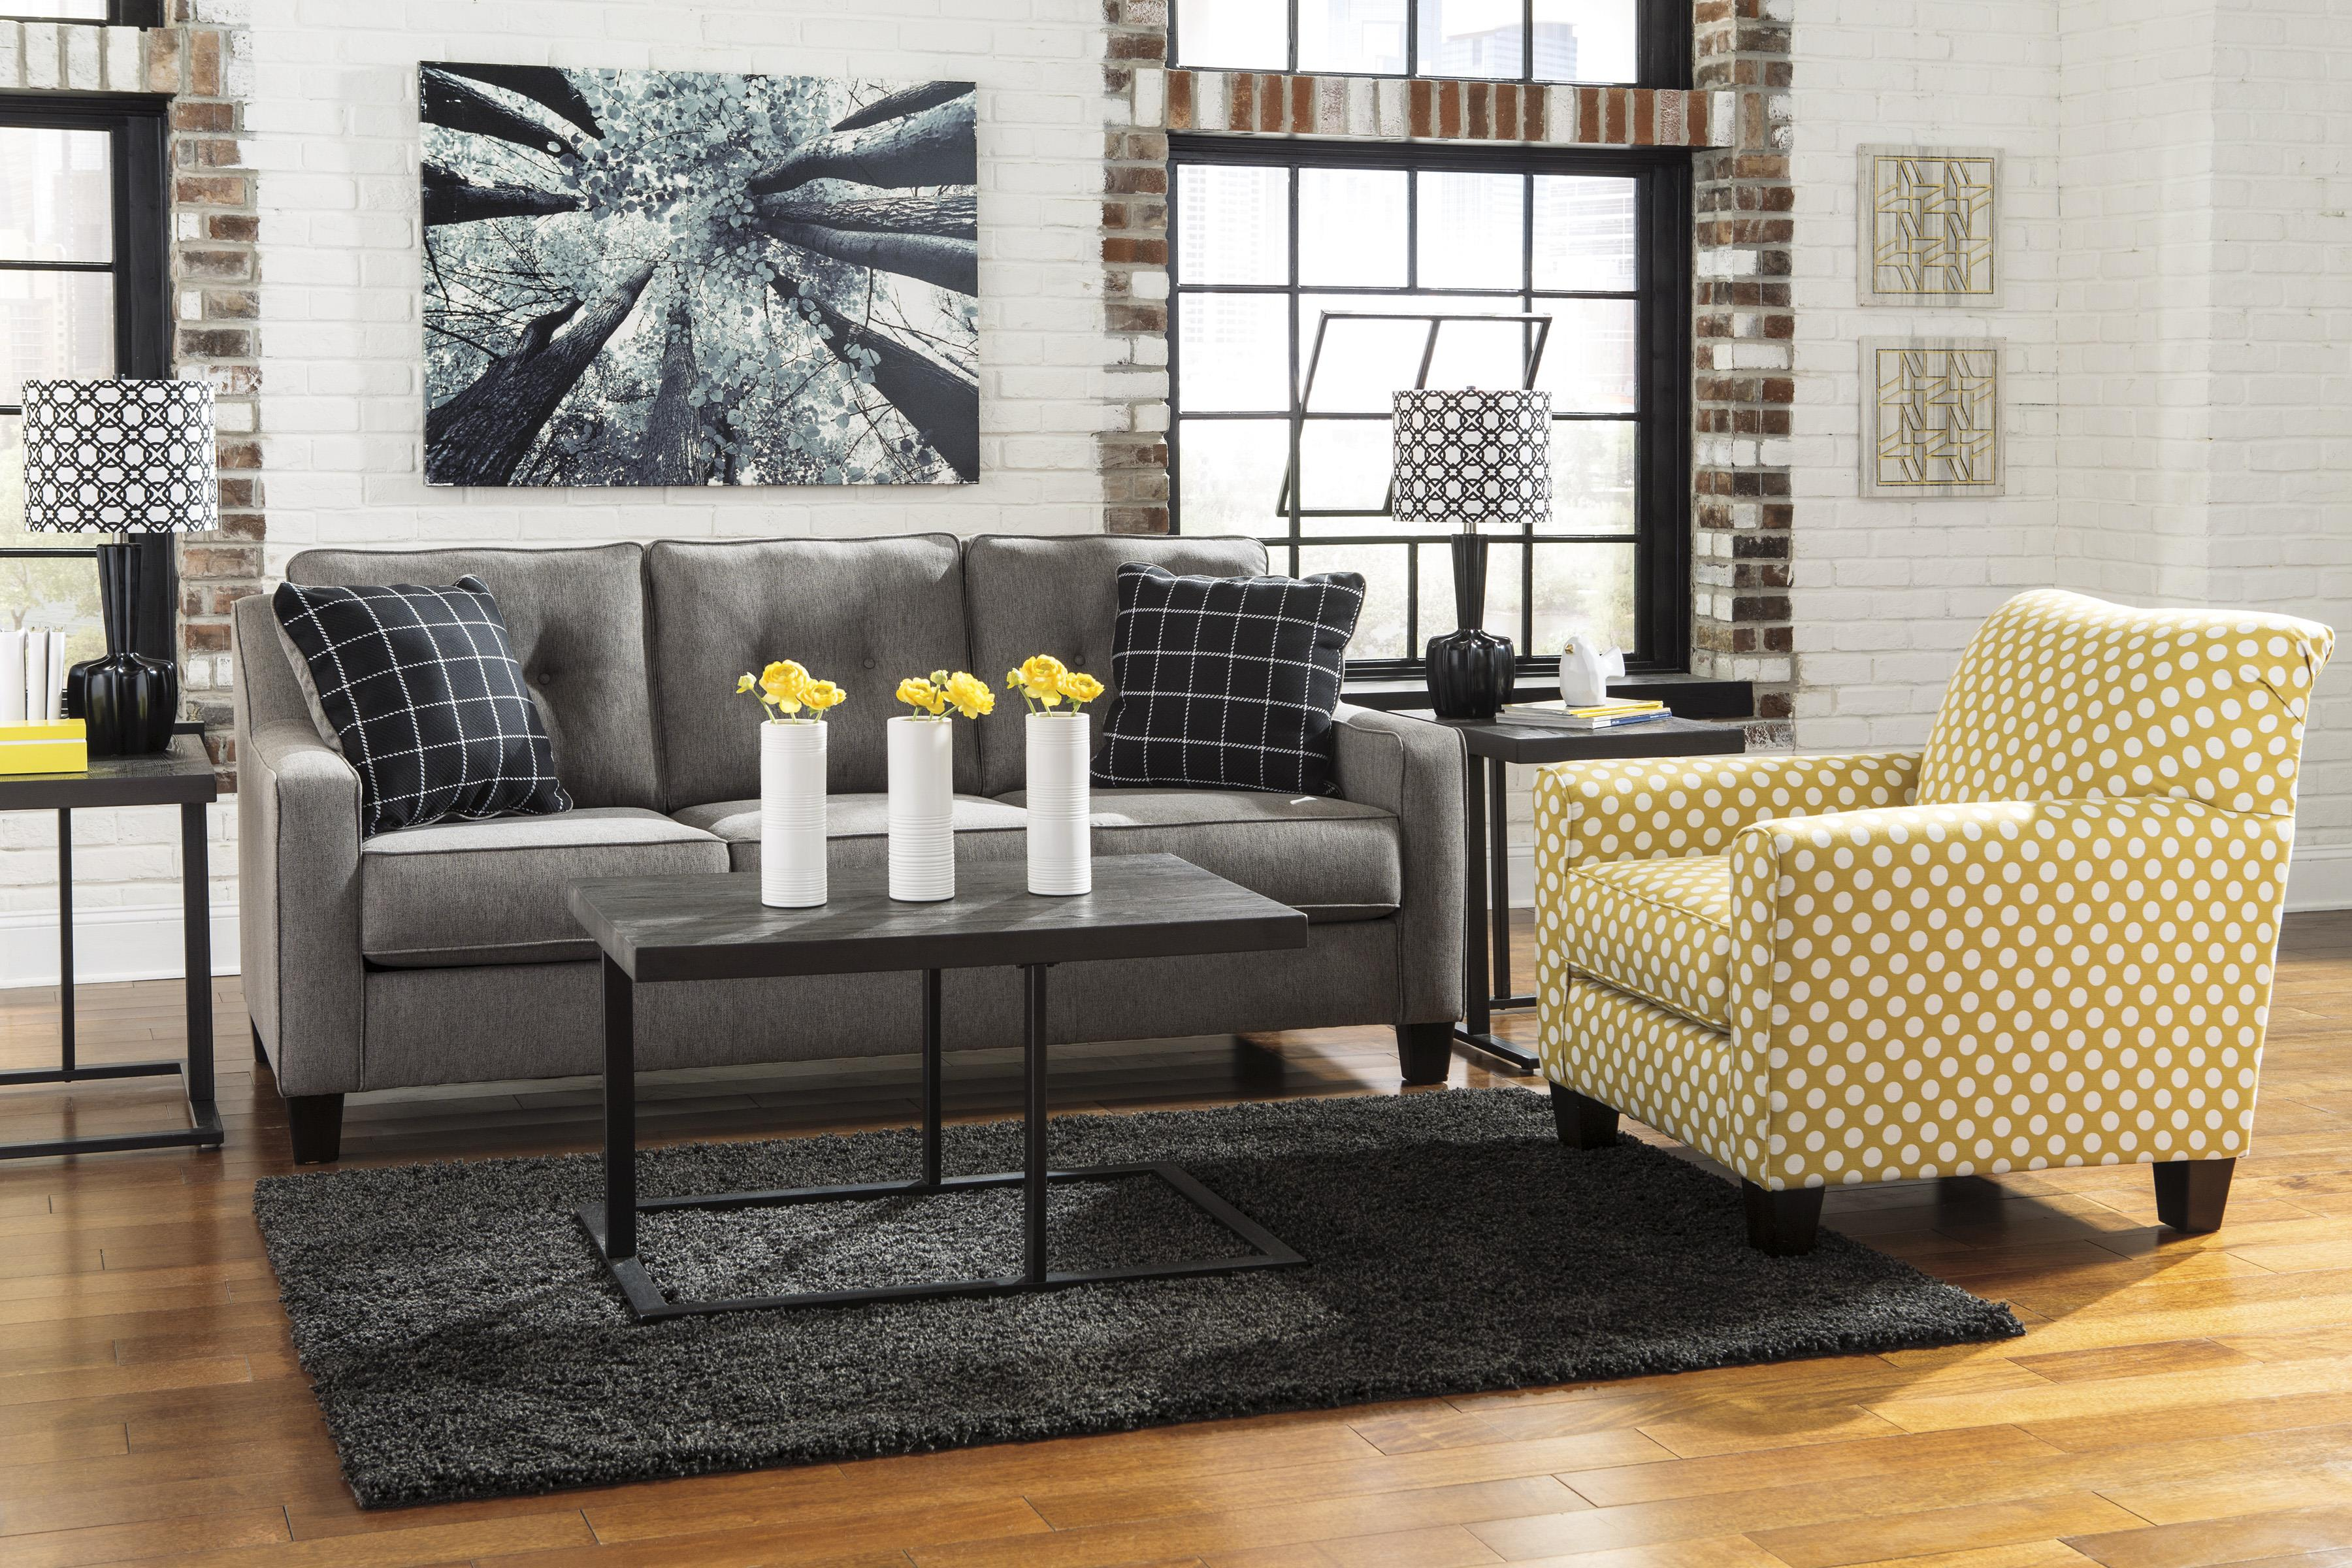 Benchcraft Brindon Stationary Living Room Group - Item Number: 53901 Living Room Group 3